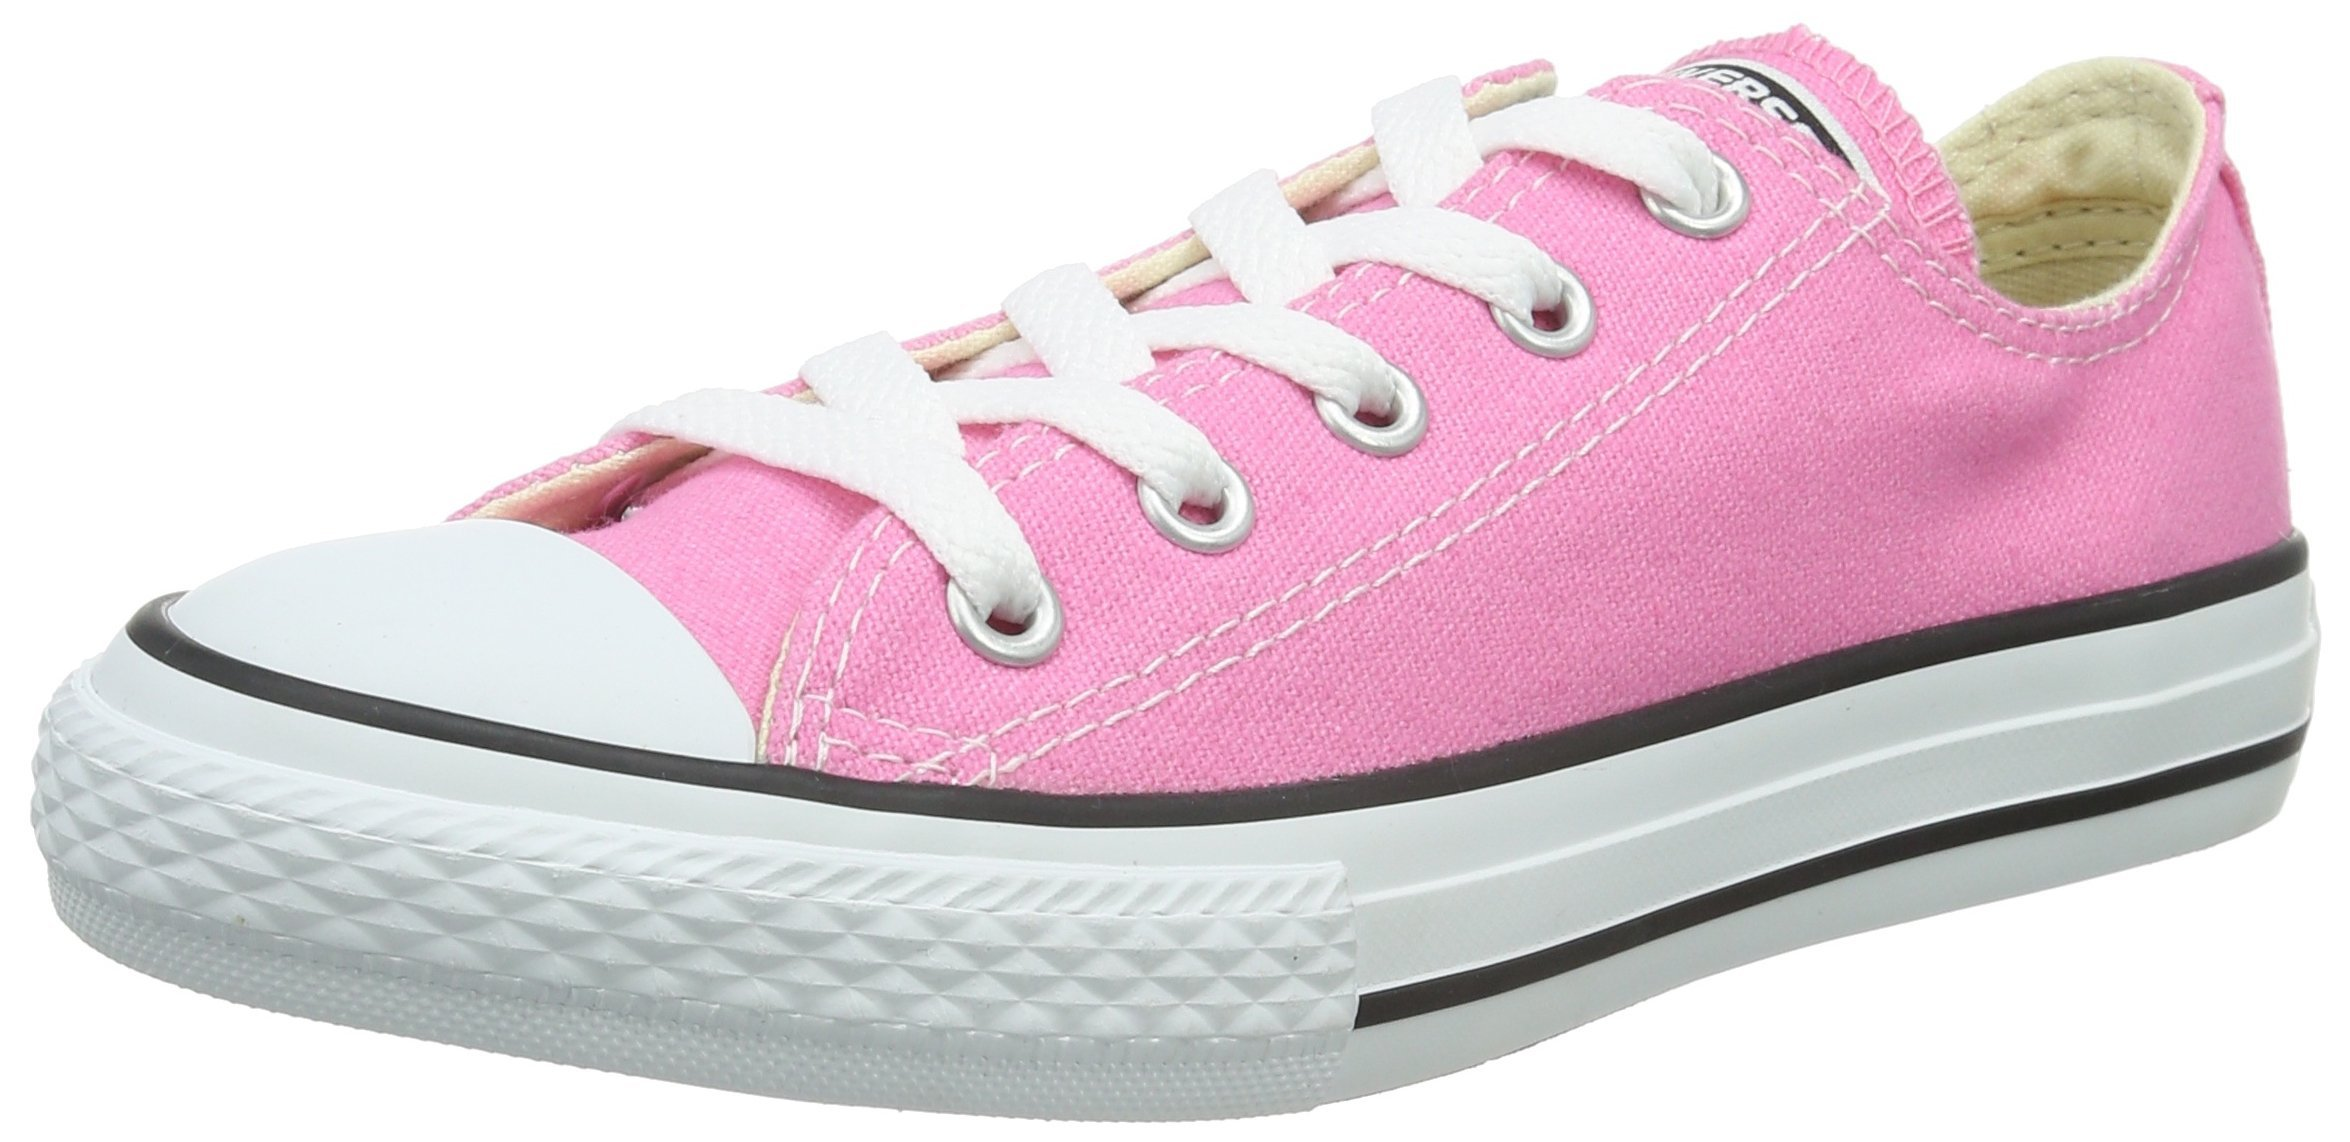 Converse Chuck Taylor All Star Low Top Pink 3J238 Youth Size 10.5